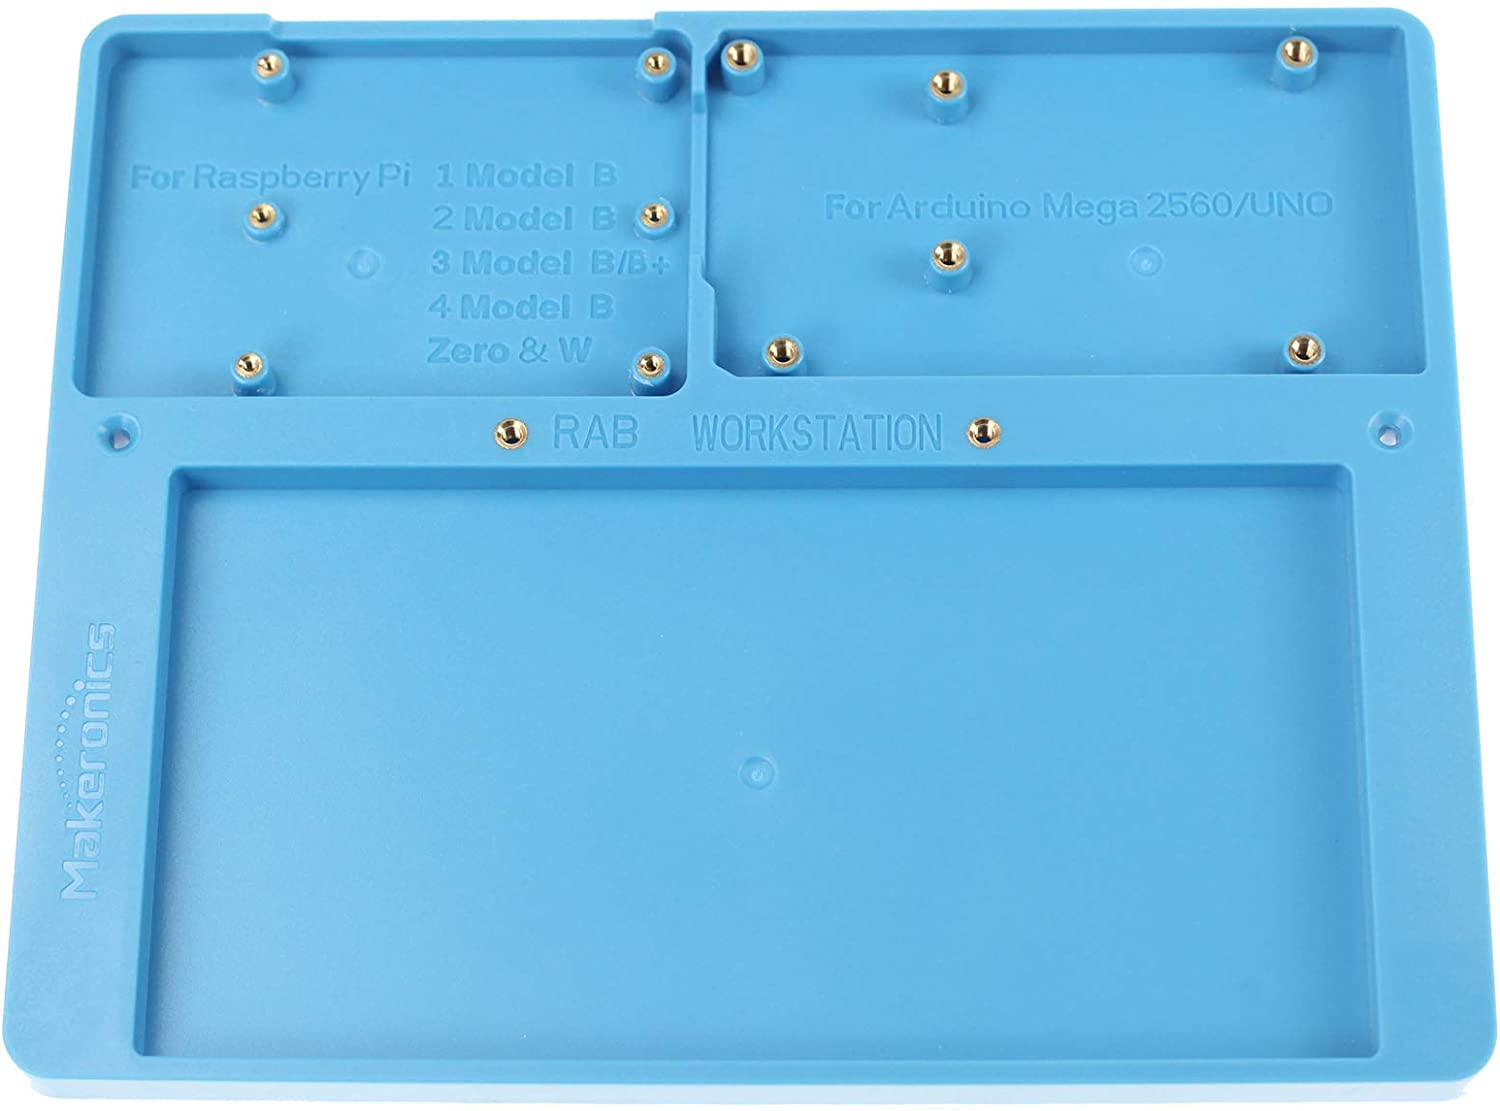 Makeronics 7 in 1 Blue RAB Holder for Raspberry Pi | Arduino | Solderless Breadboard, Base Plate with Rubber Feet for Raspberry Pi 4 Model B|3B+/B|2B+/B|Zero |Zero W and Arduino Mega 2560 | Uno R3